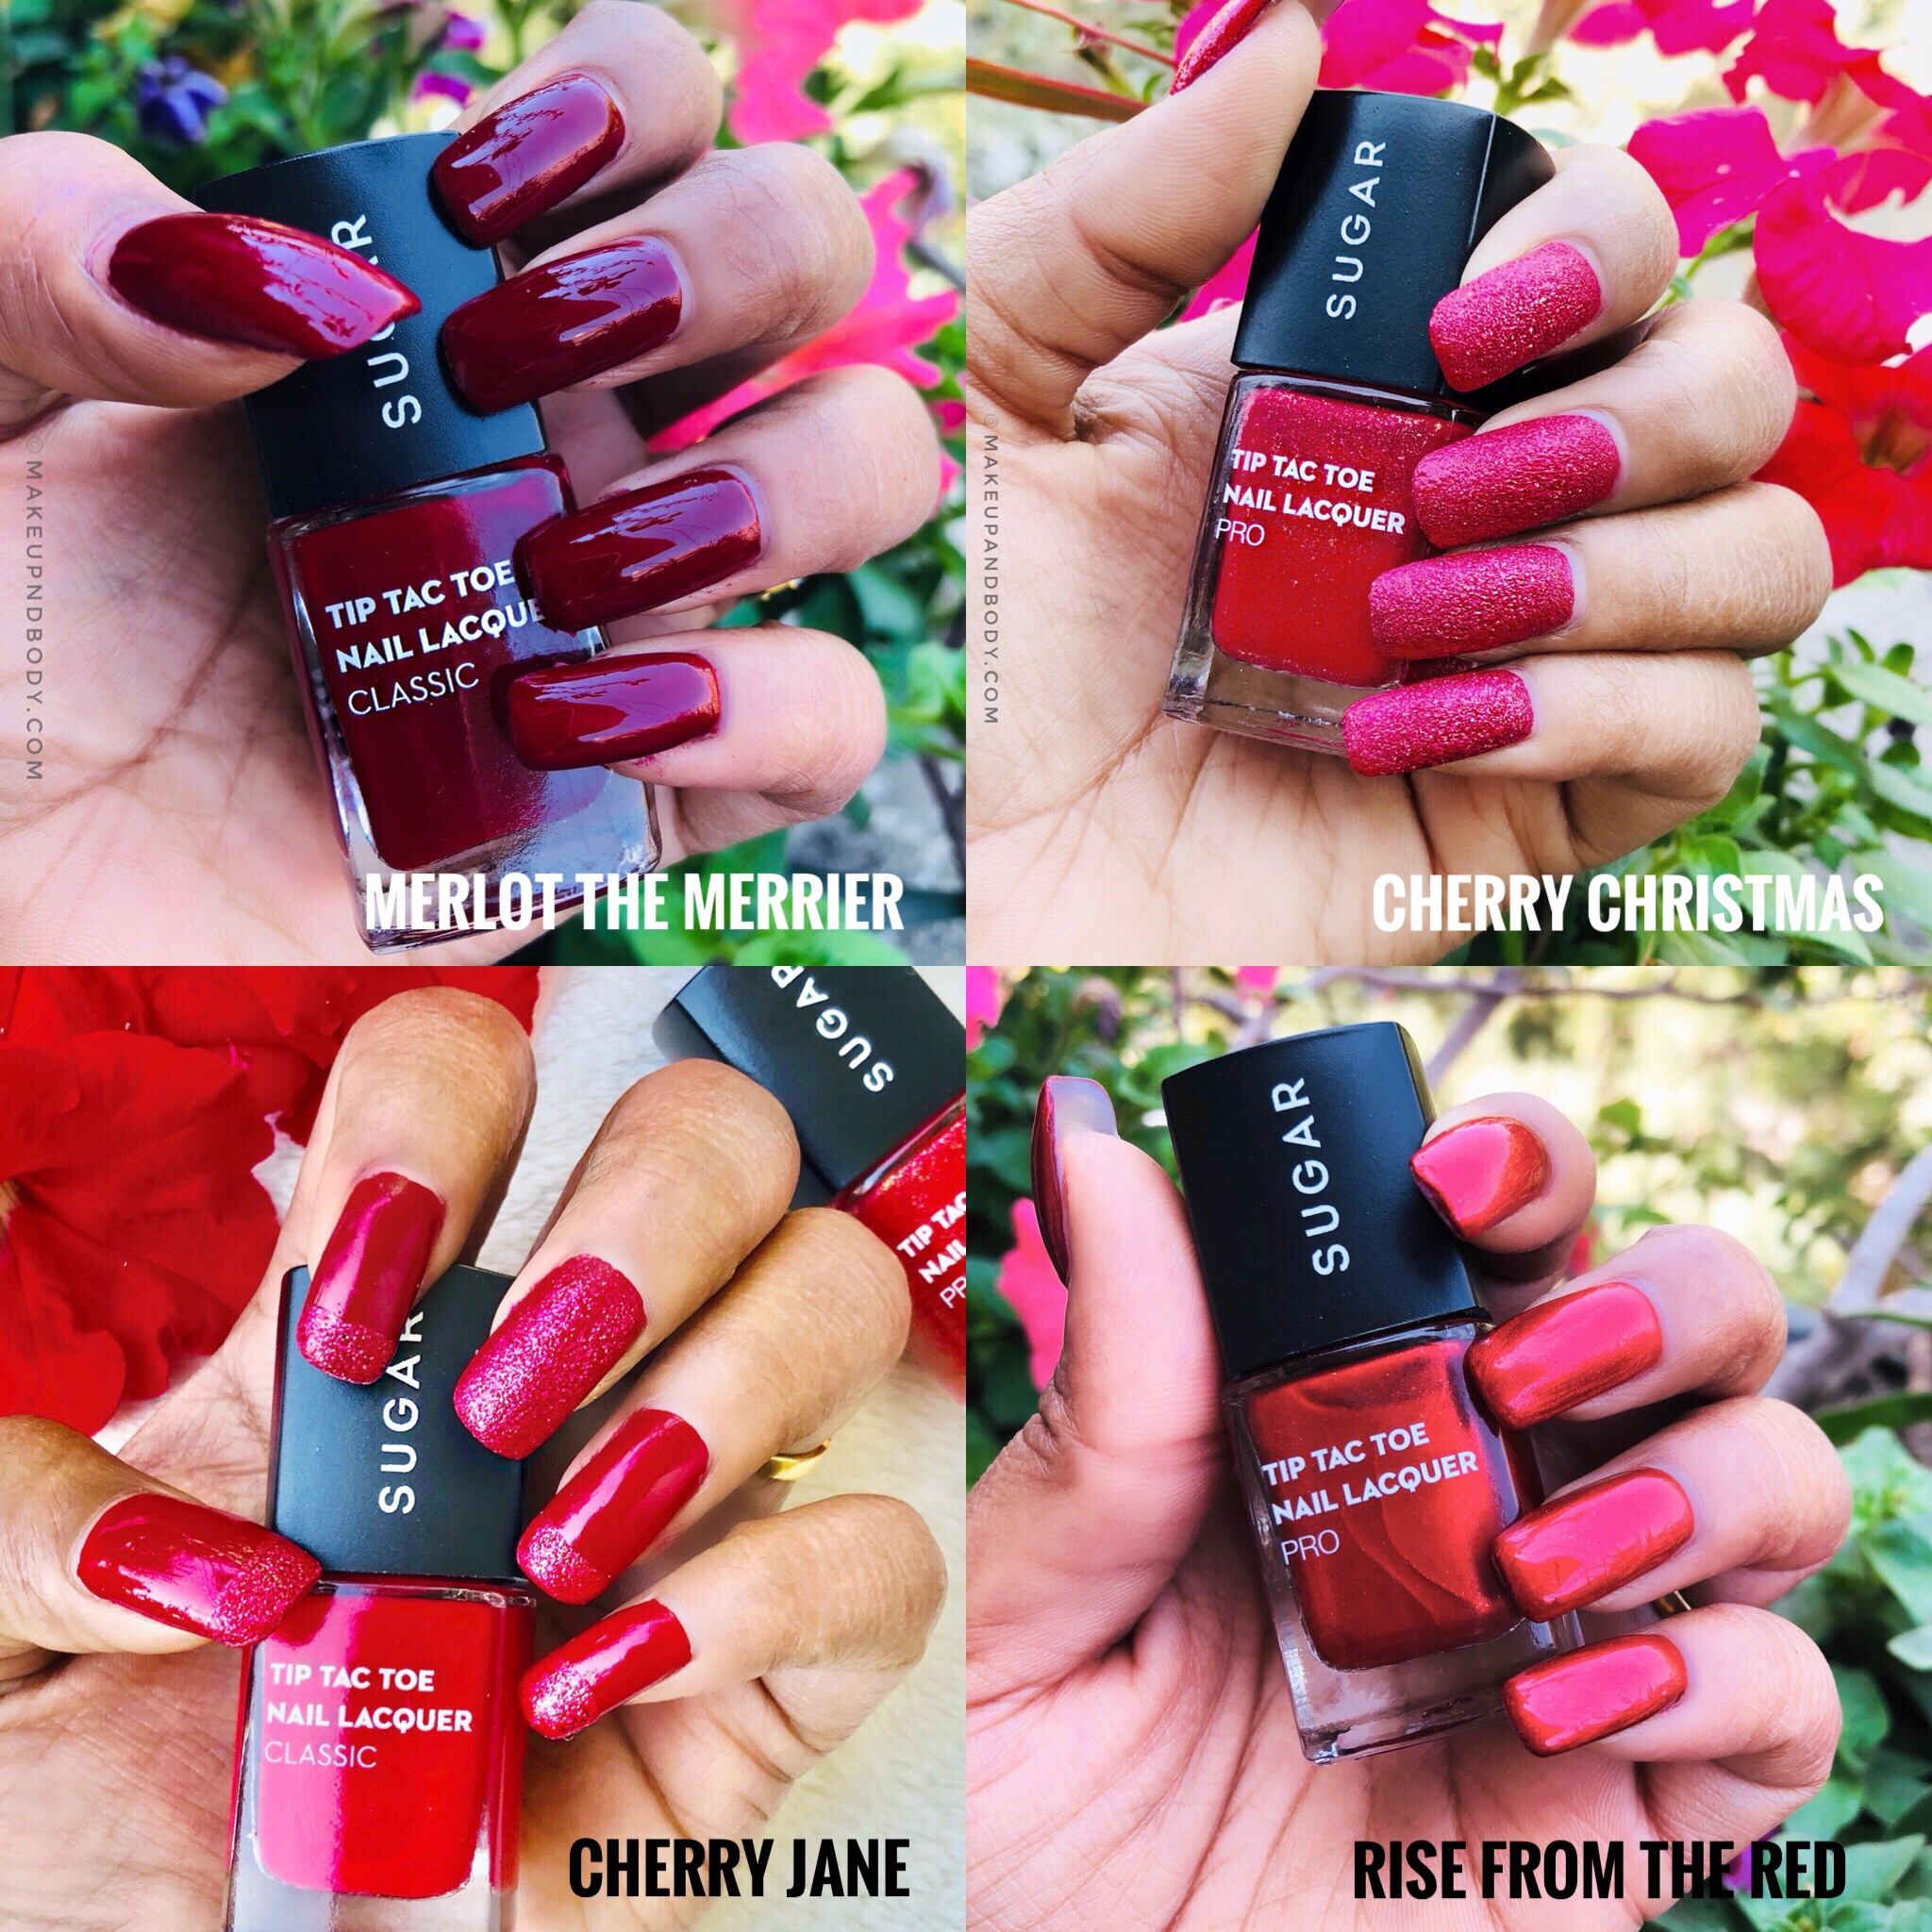 SUGAR Tip Tac Toe Nail Lacquer RED ALERT Collection Review & Swatches